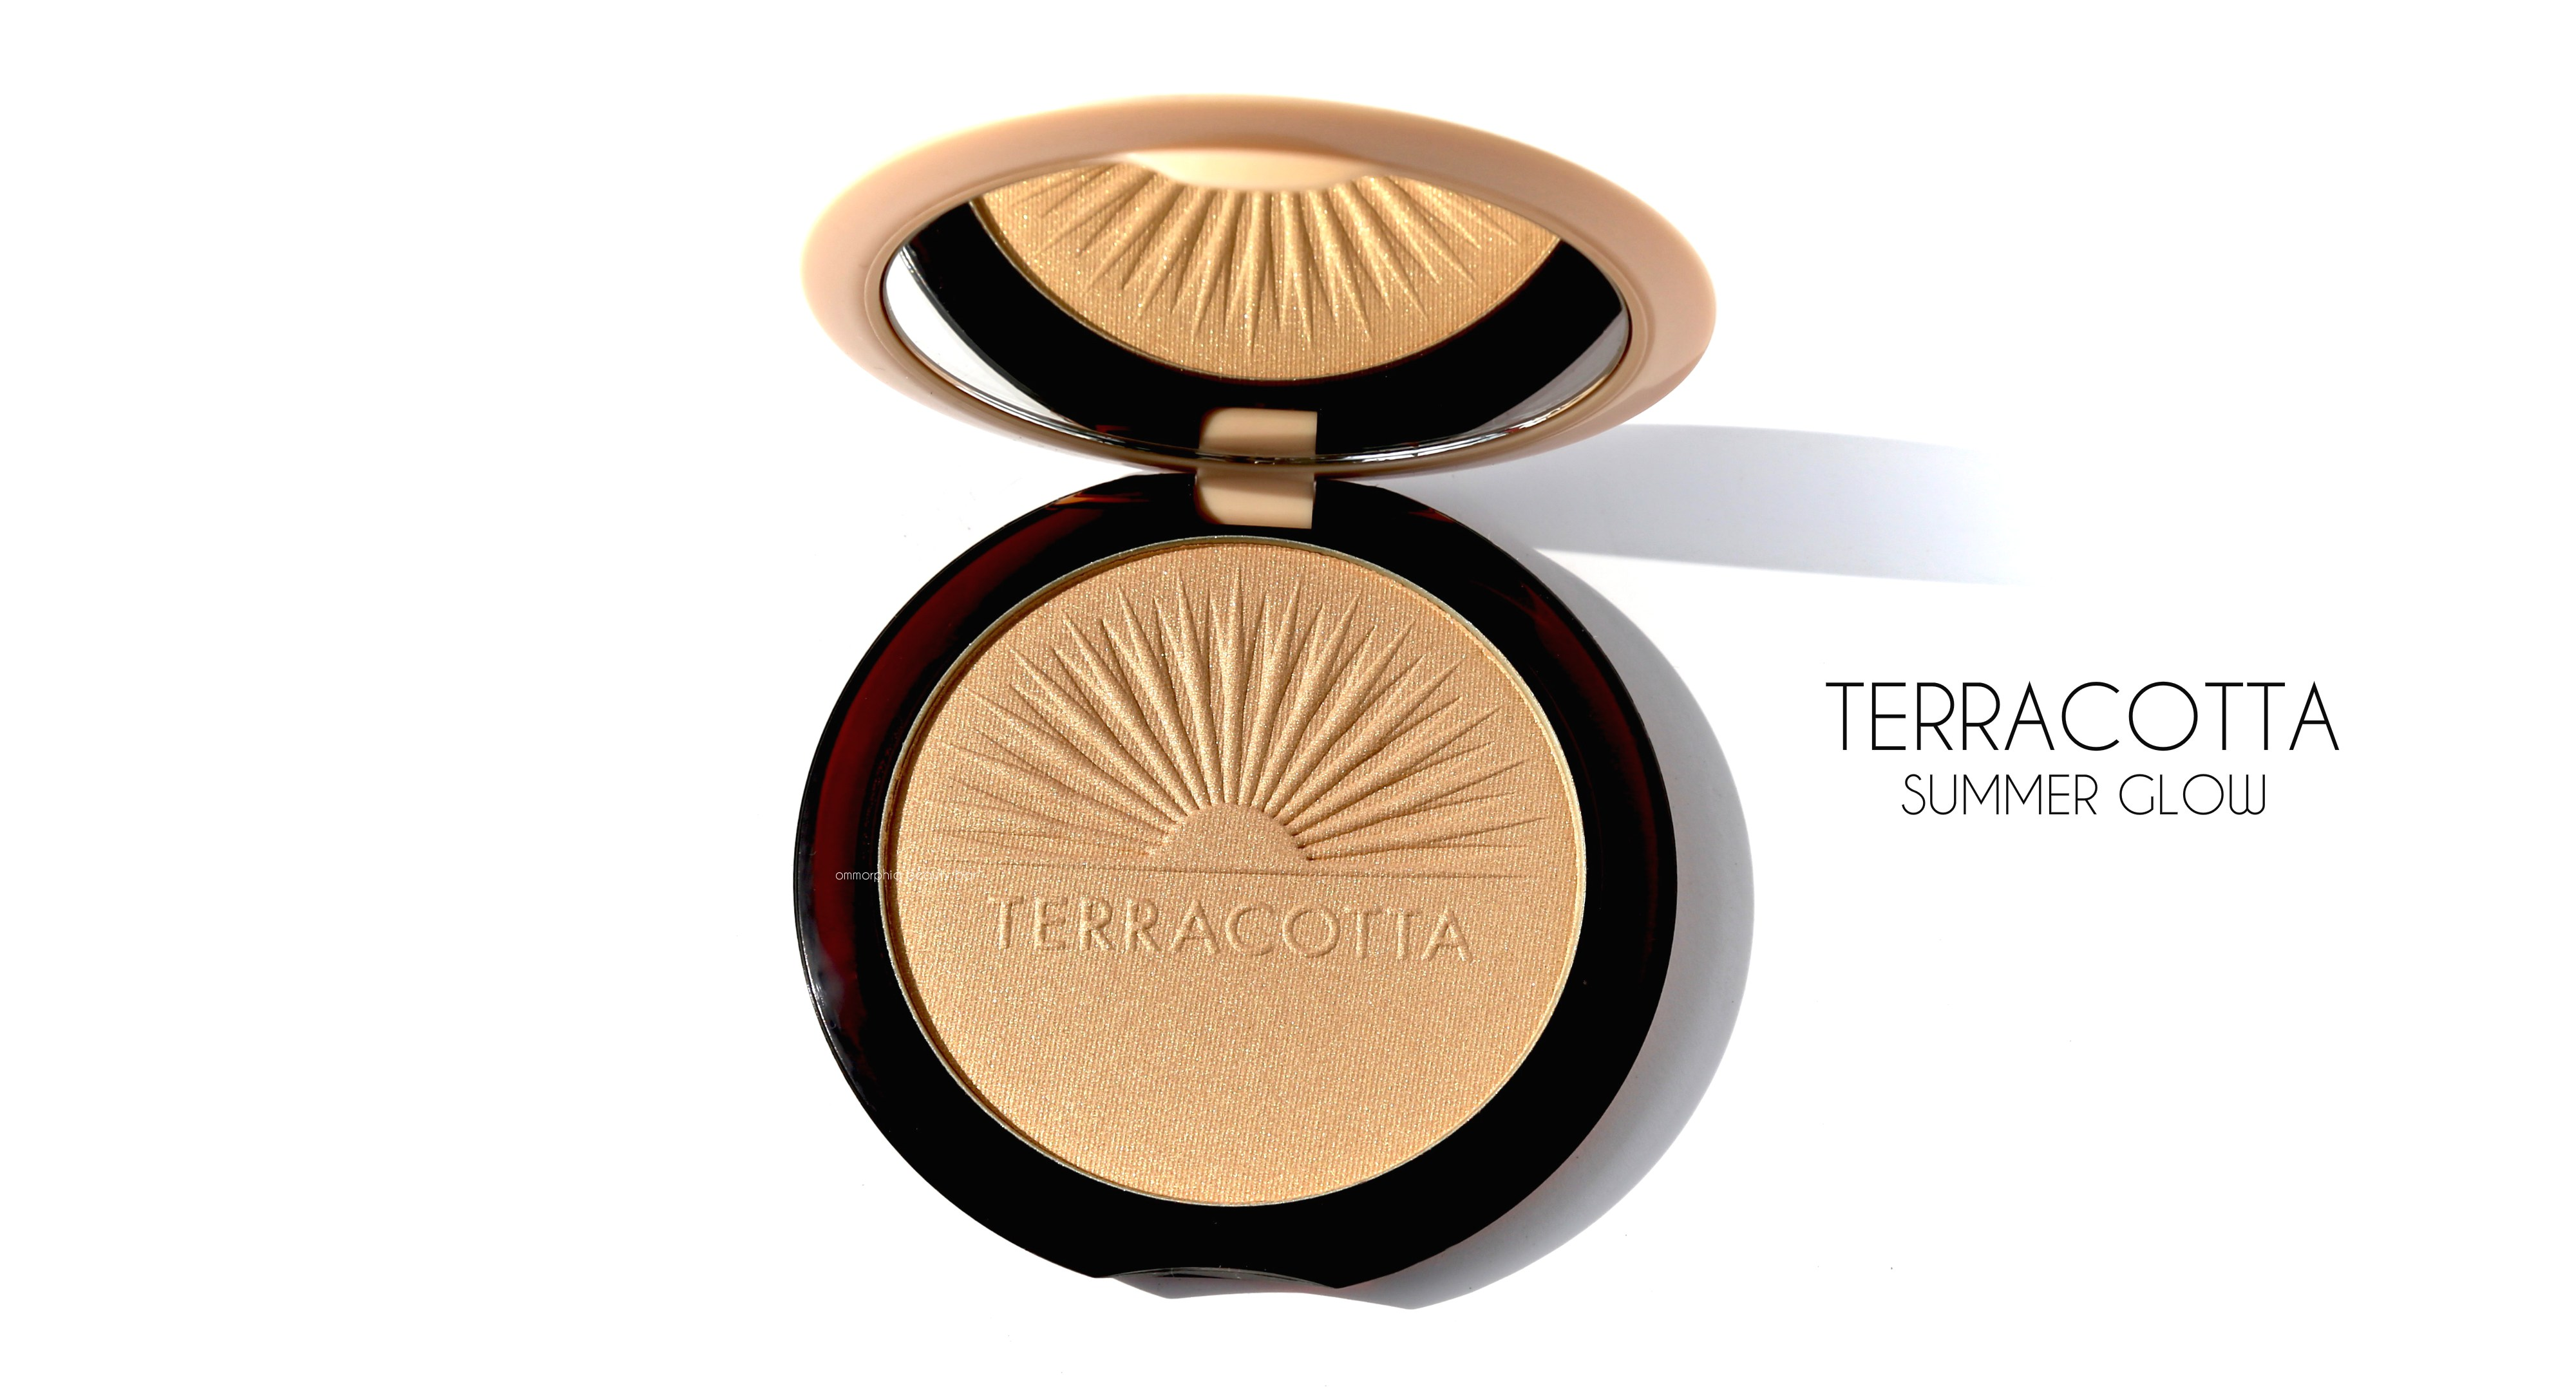 GUERLAIN Terracotta Summer Glow Golden Glow Powder Highlighter 10g